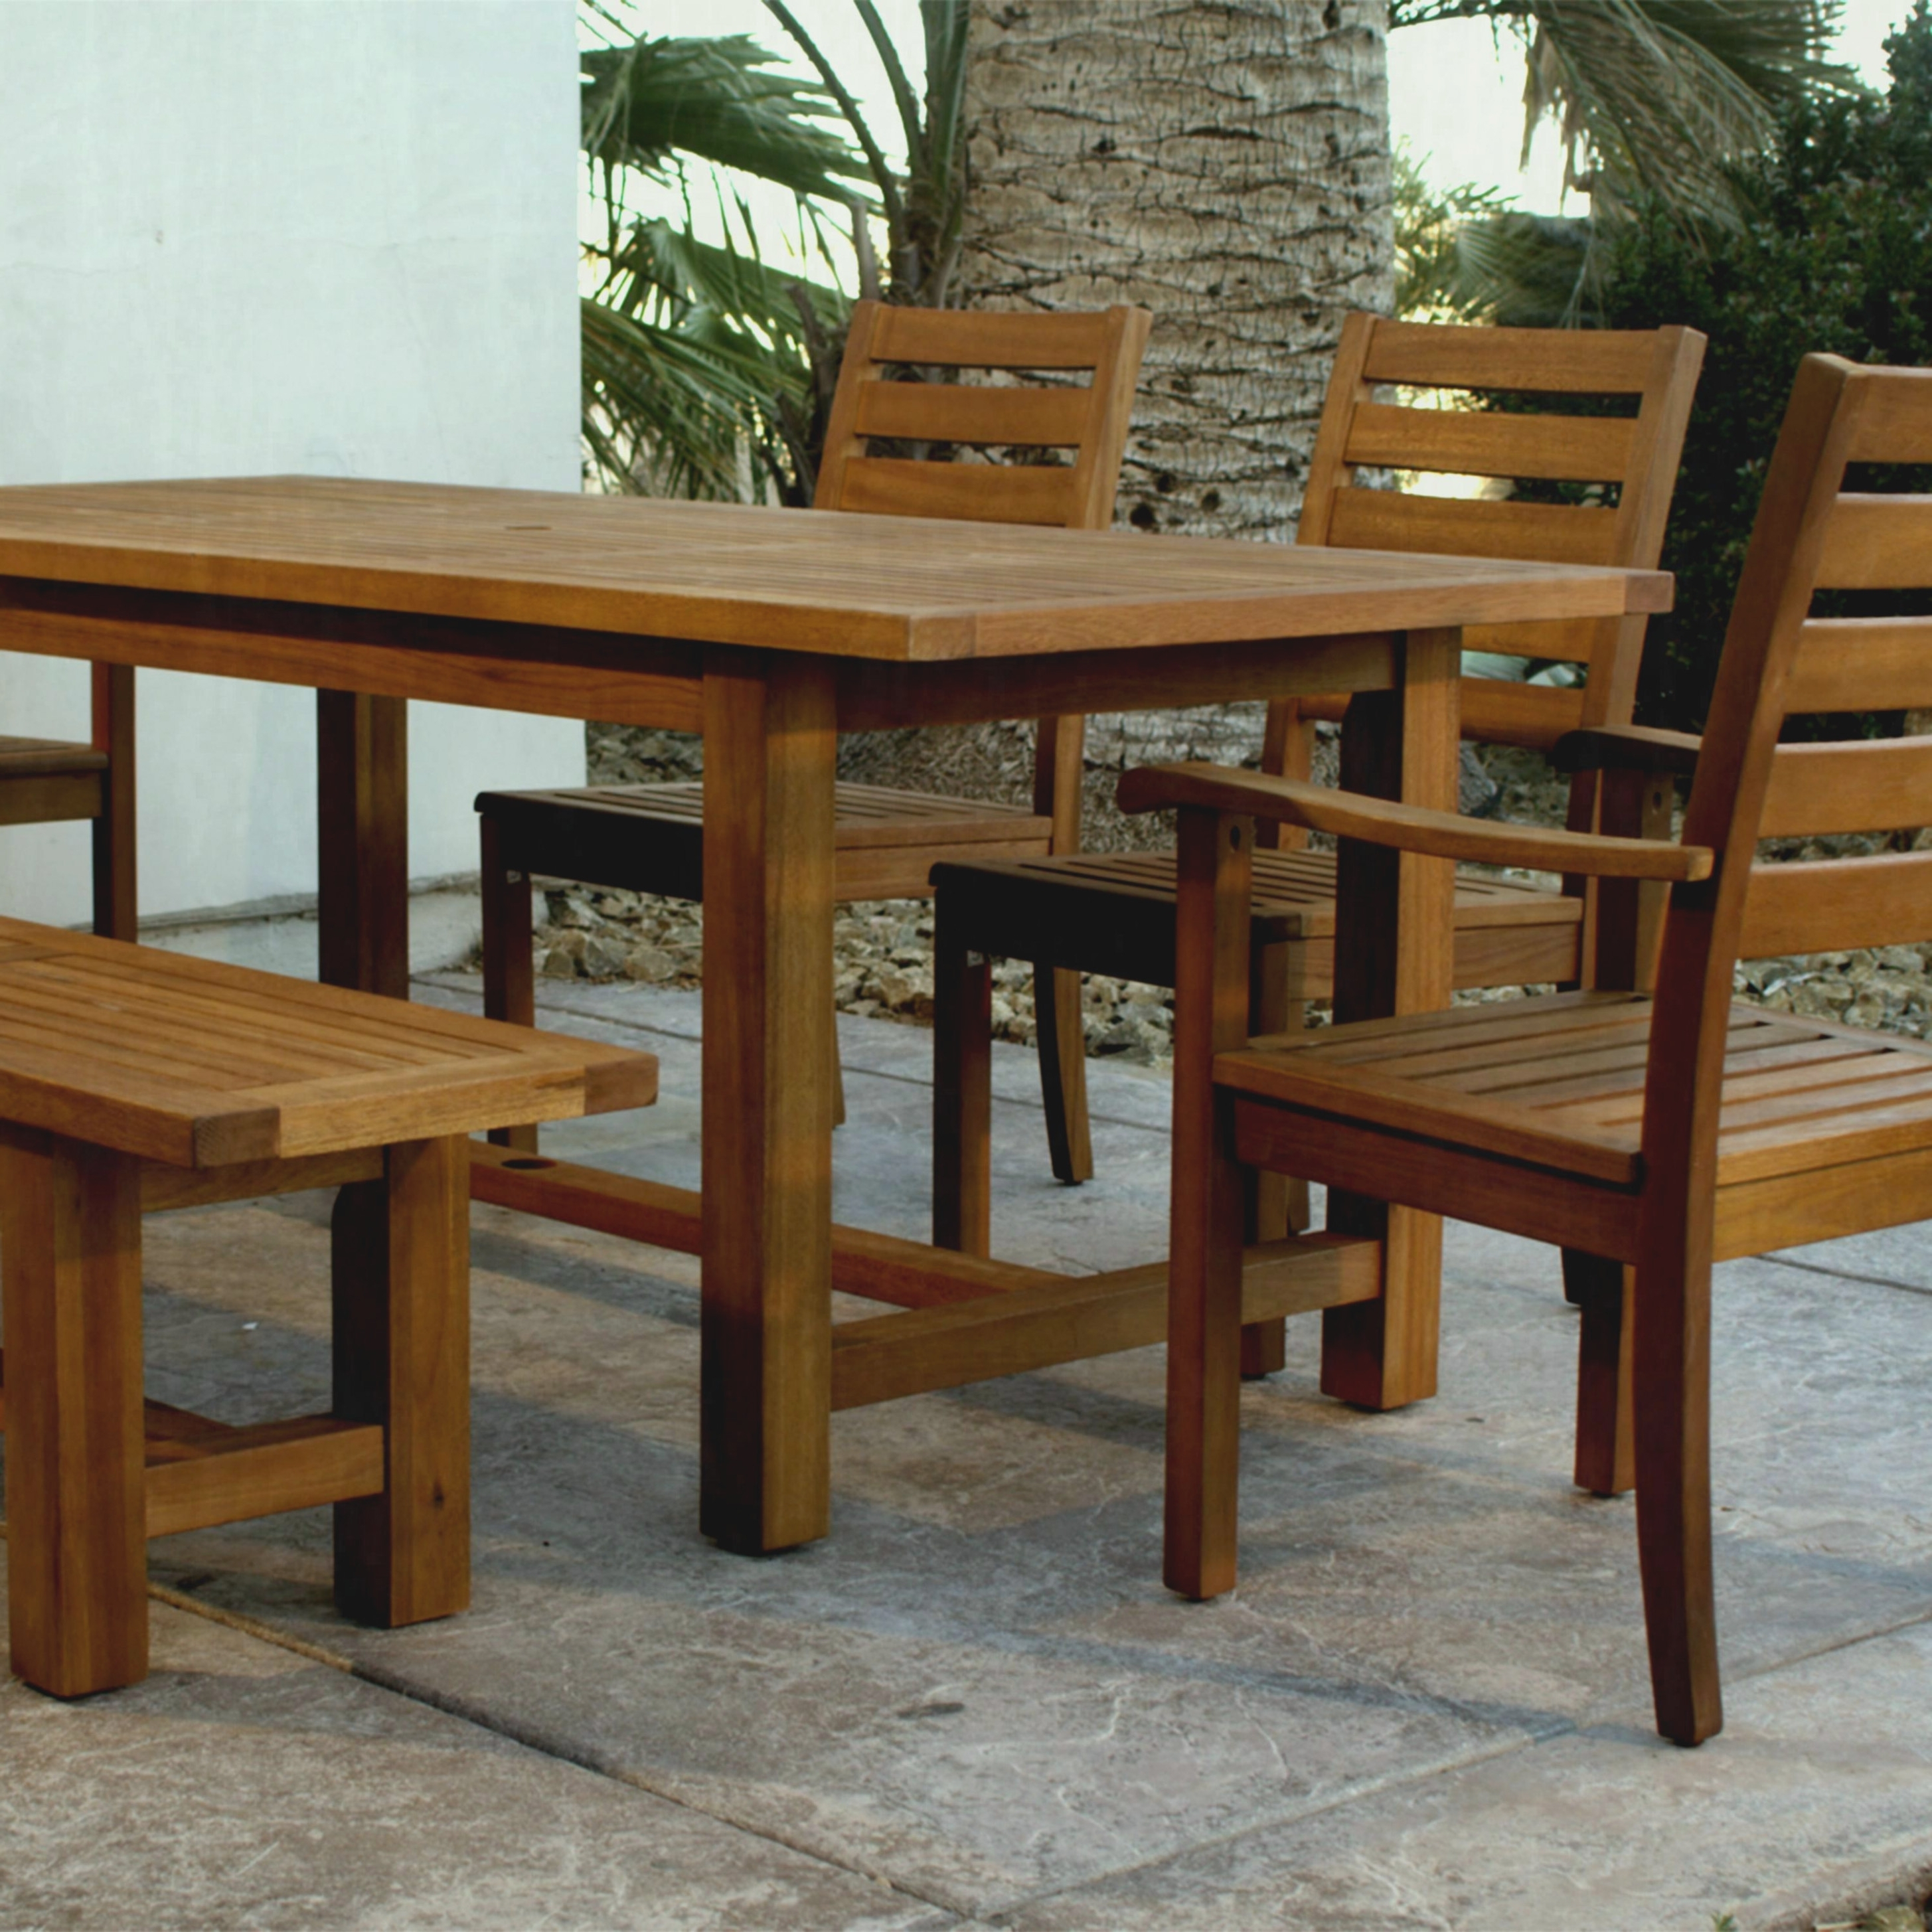 Market Dining Tables Pertaining To Most Popular Thumb Img Wood Praiano Outdoor Dining Table World Market – Furniture (View 11 of 25)